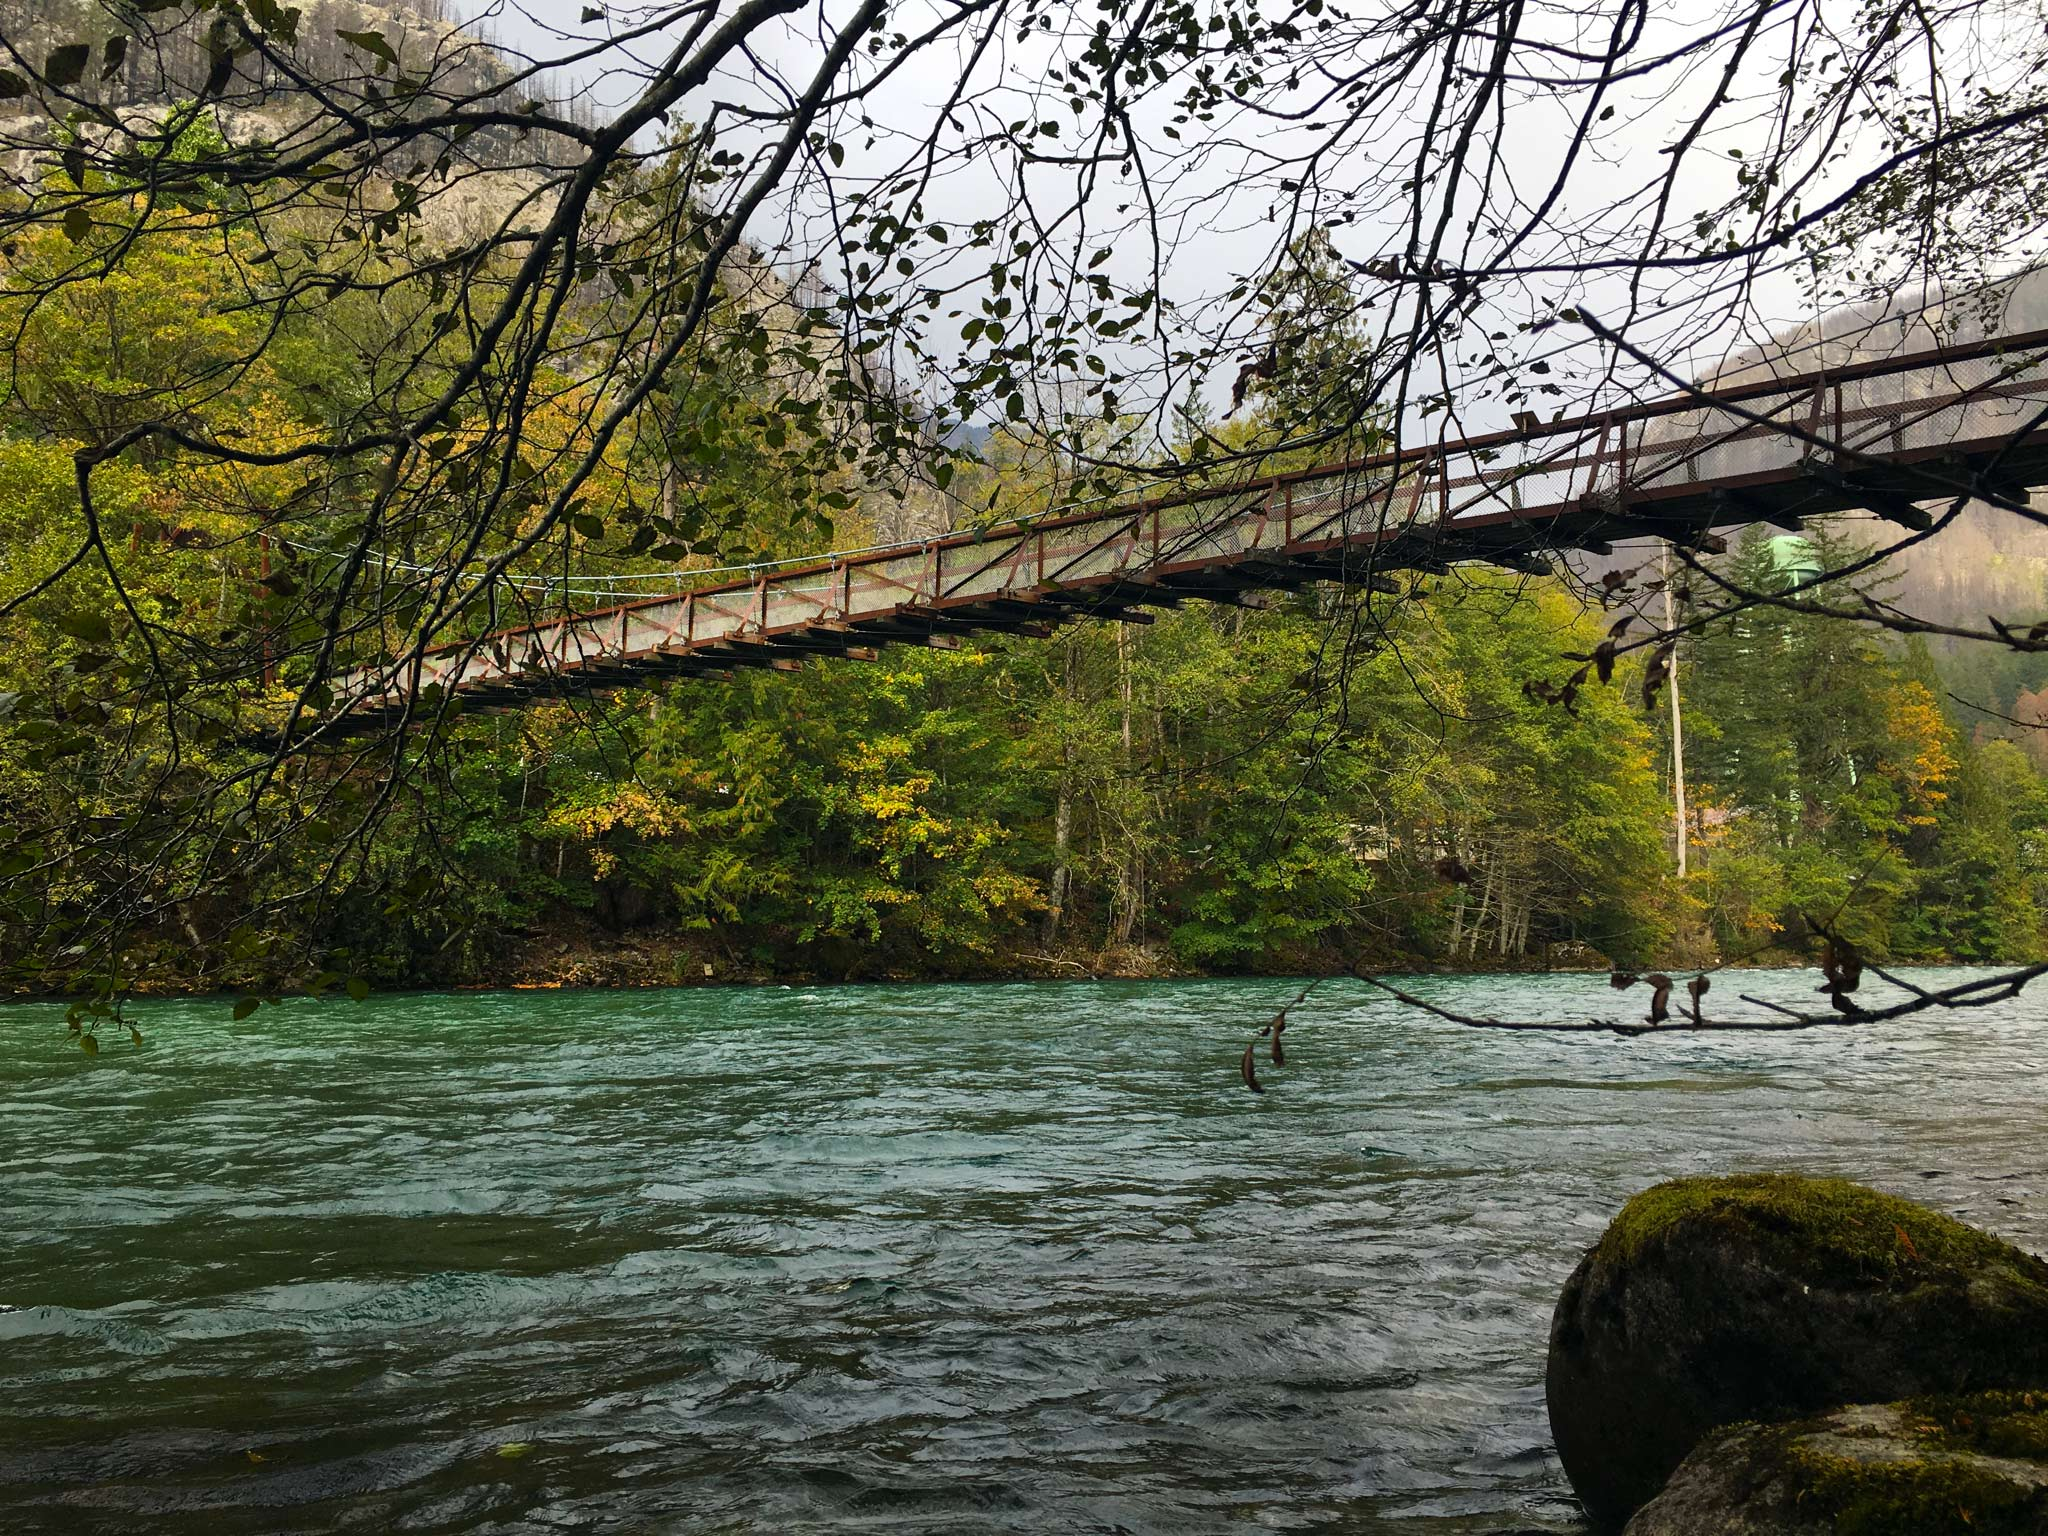 Trail of Cedars bridge, photo by Derek Wright.